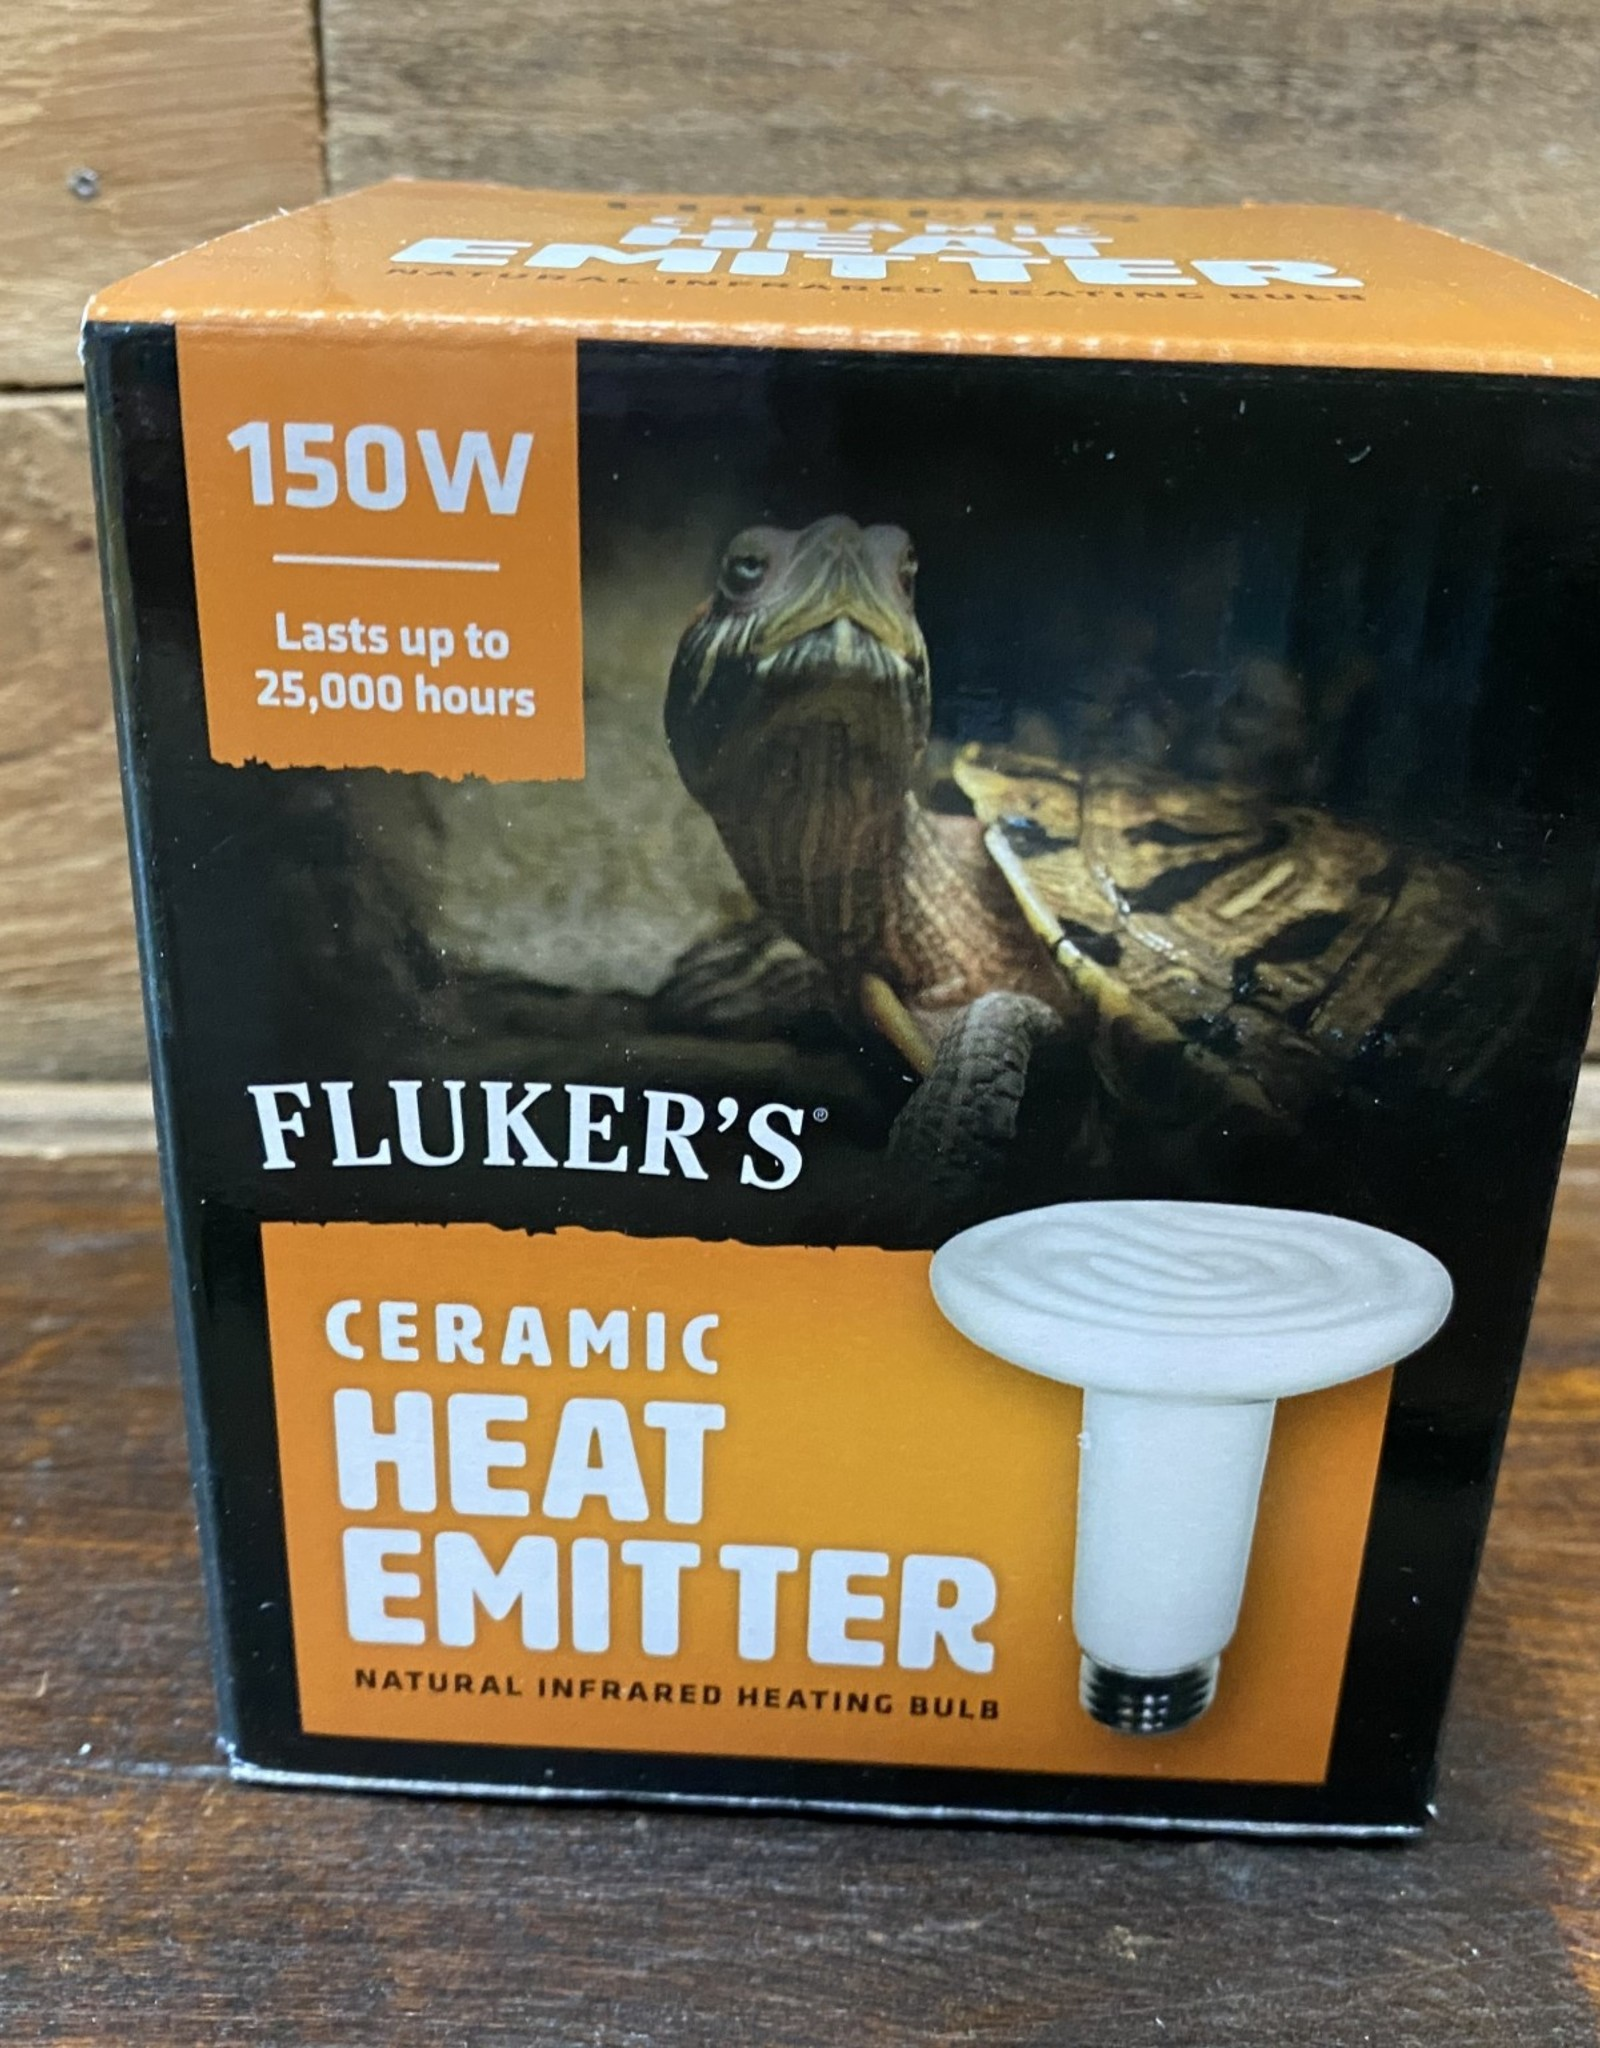 FlukerFARMS  150 W. CERAMIC HEAT EMITTER